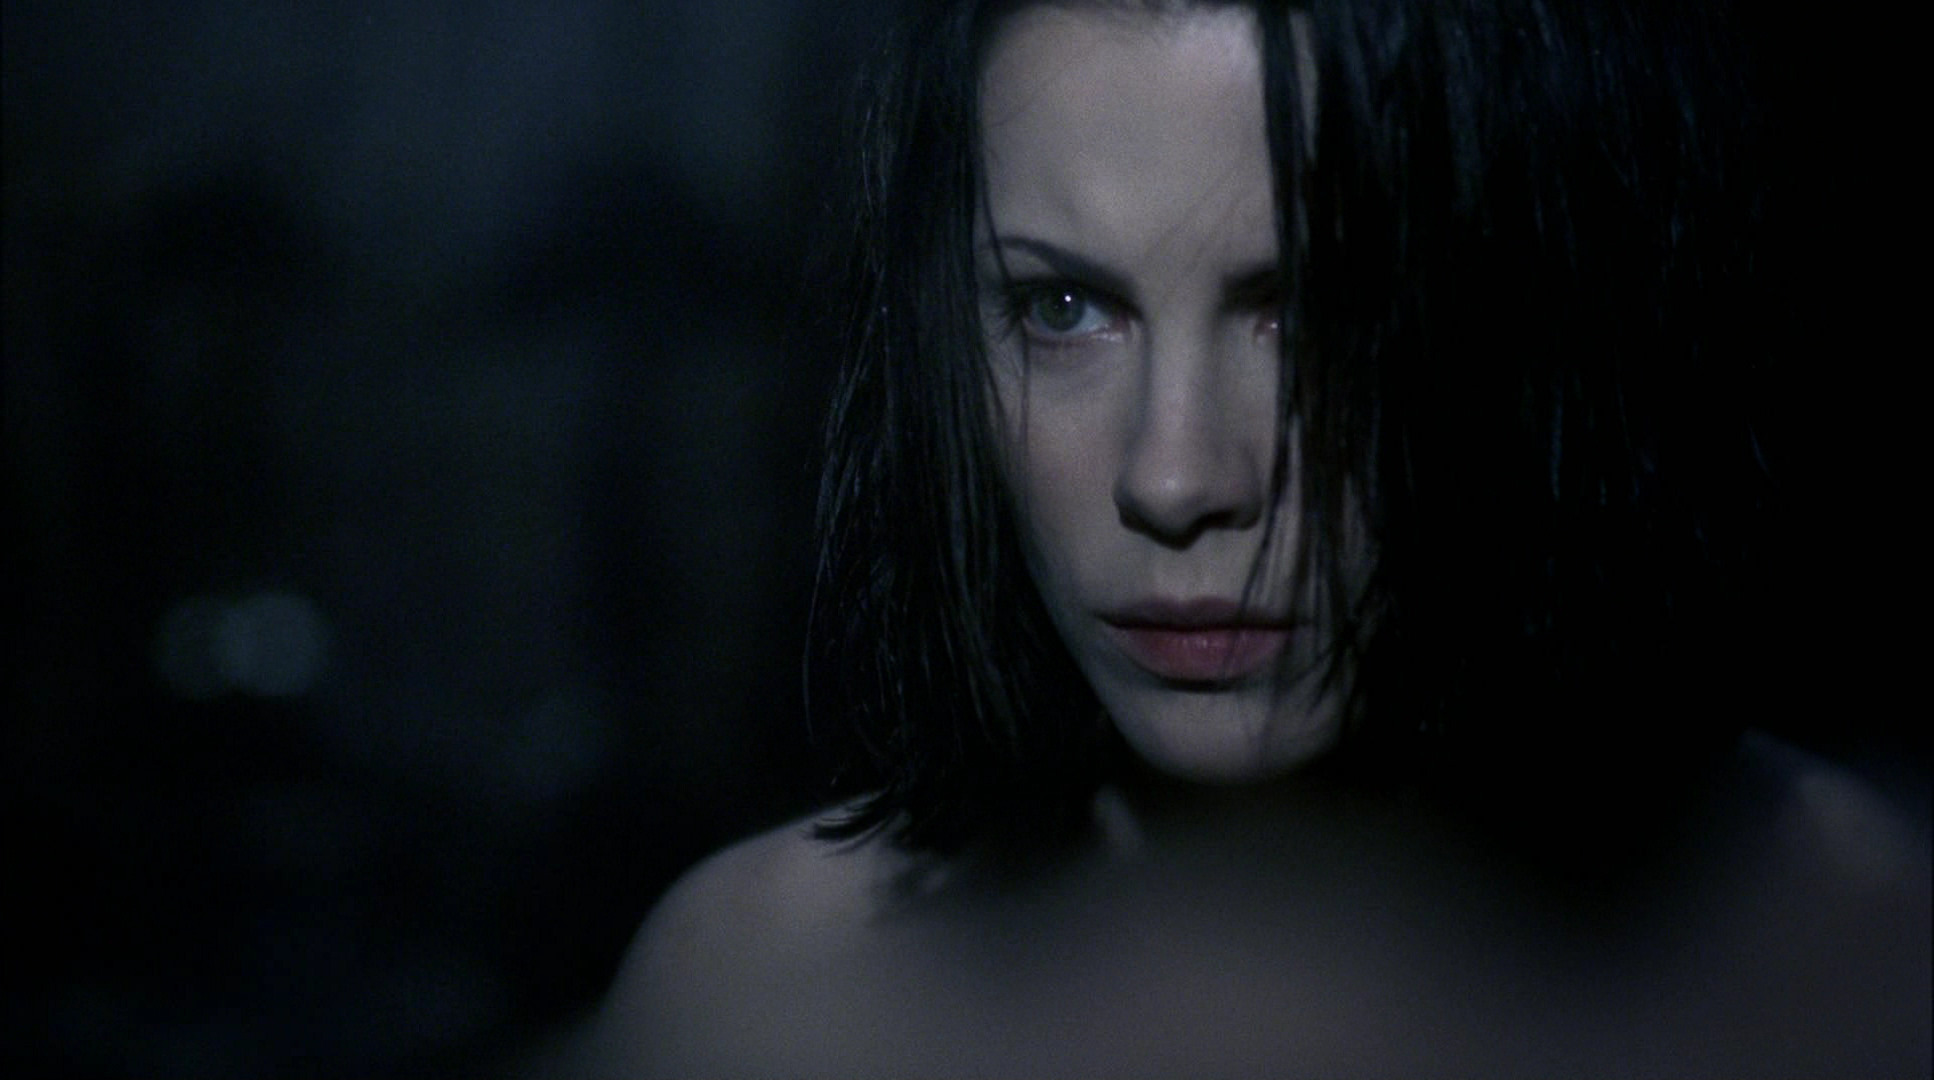 underworld 2003 kate beckinsale image 5346644 fanpop